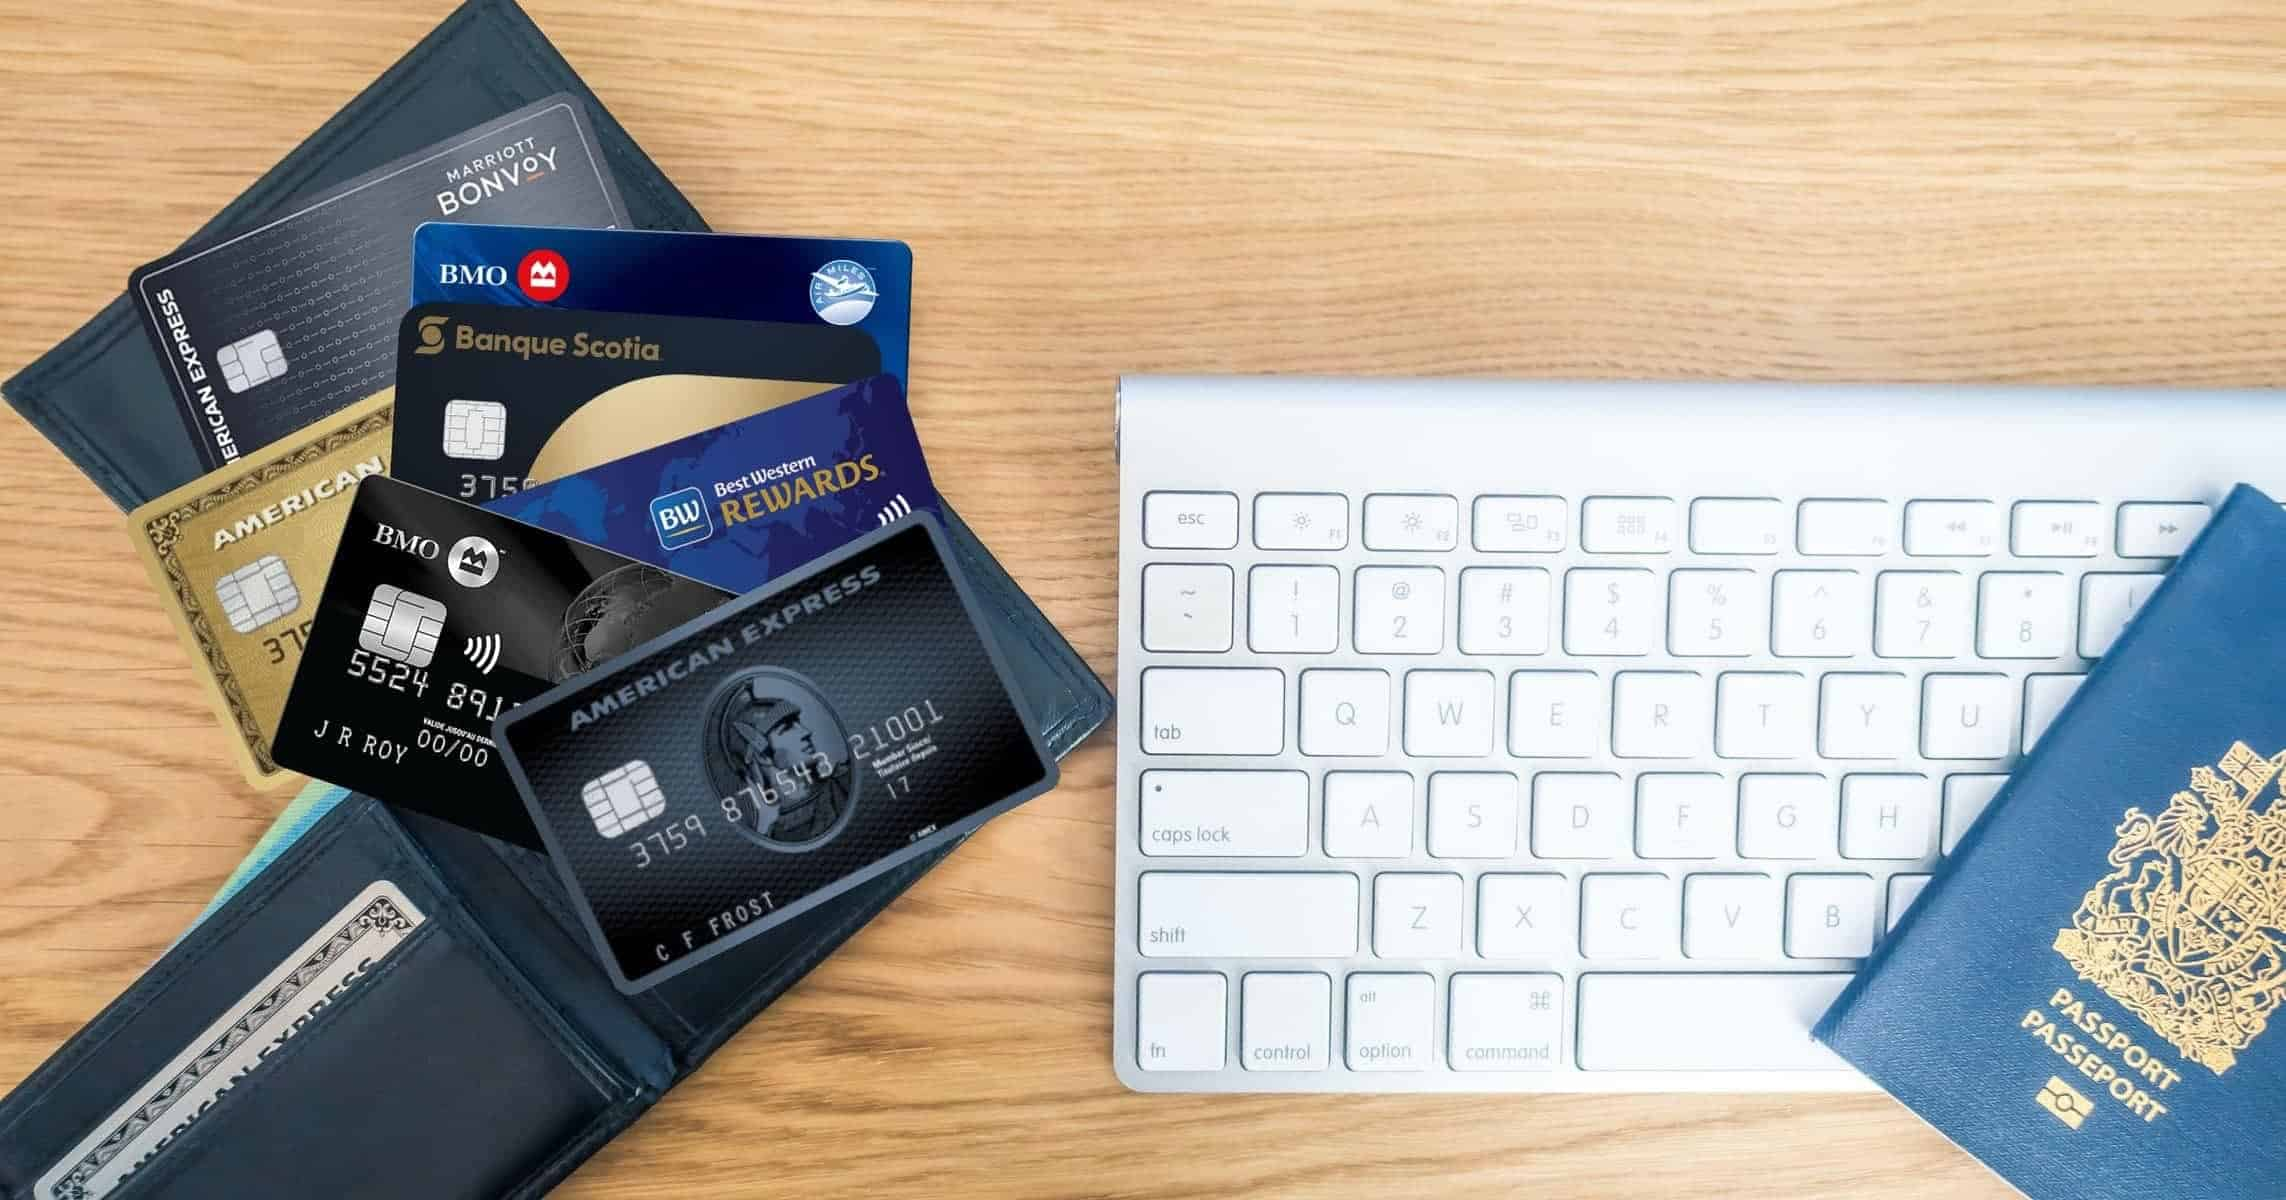 credit cards on the table along with keyboard and passport